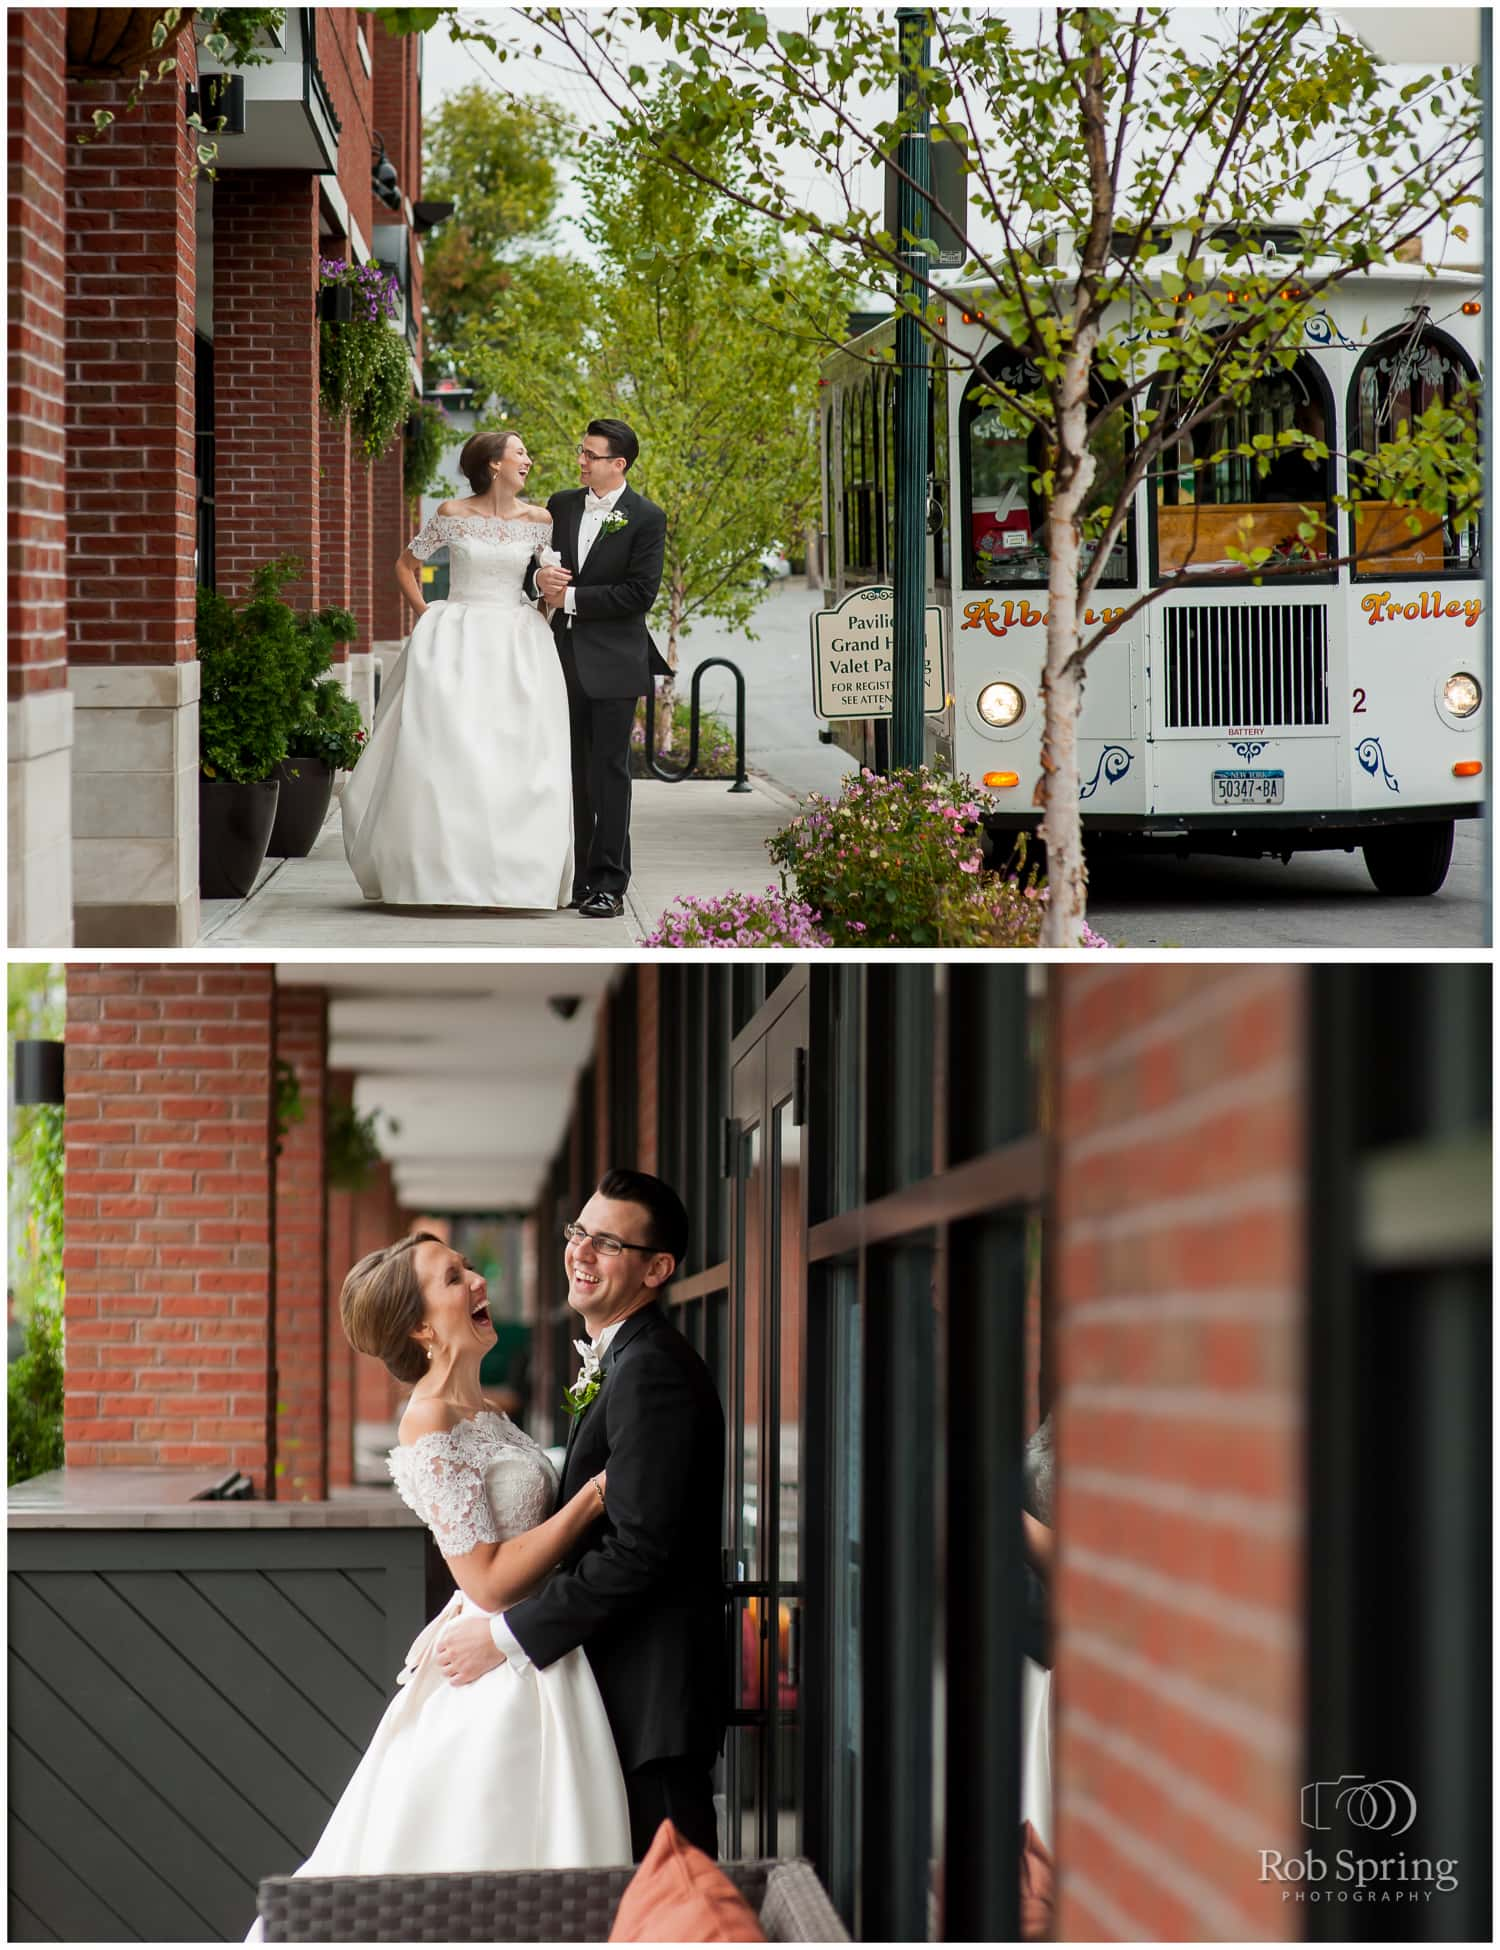 wedding photos with albany trolley, Pavilion Grand Hotel, Saratoga Springs, NY wedding photographer | Canfield Casino wedding